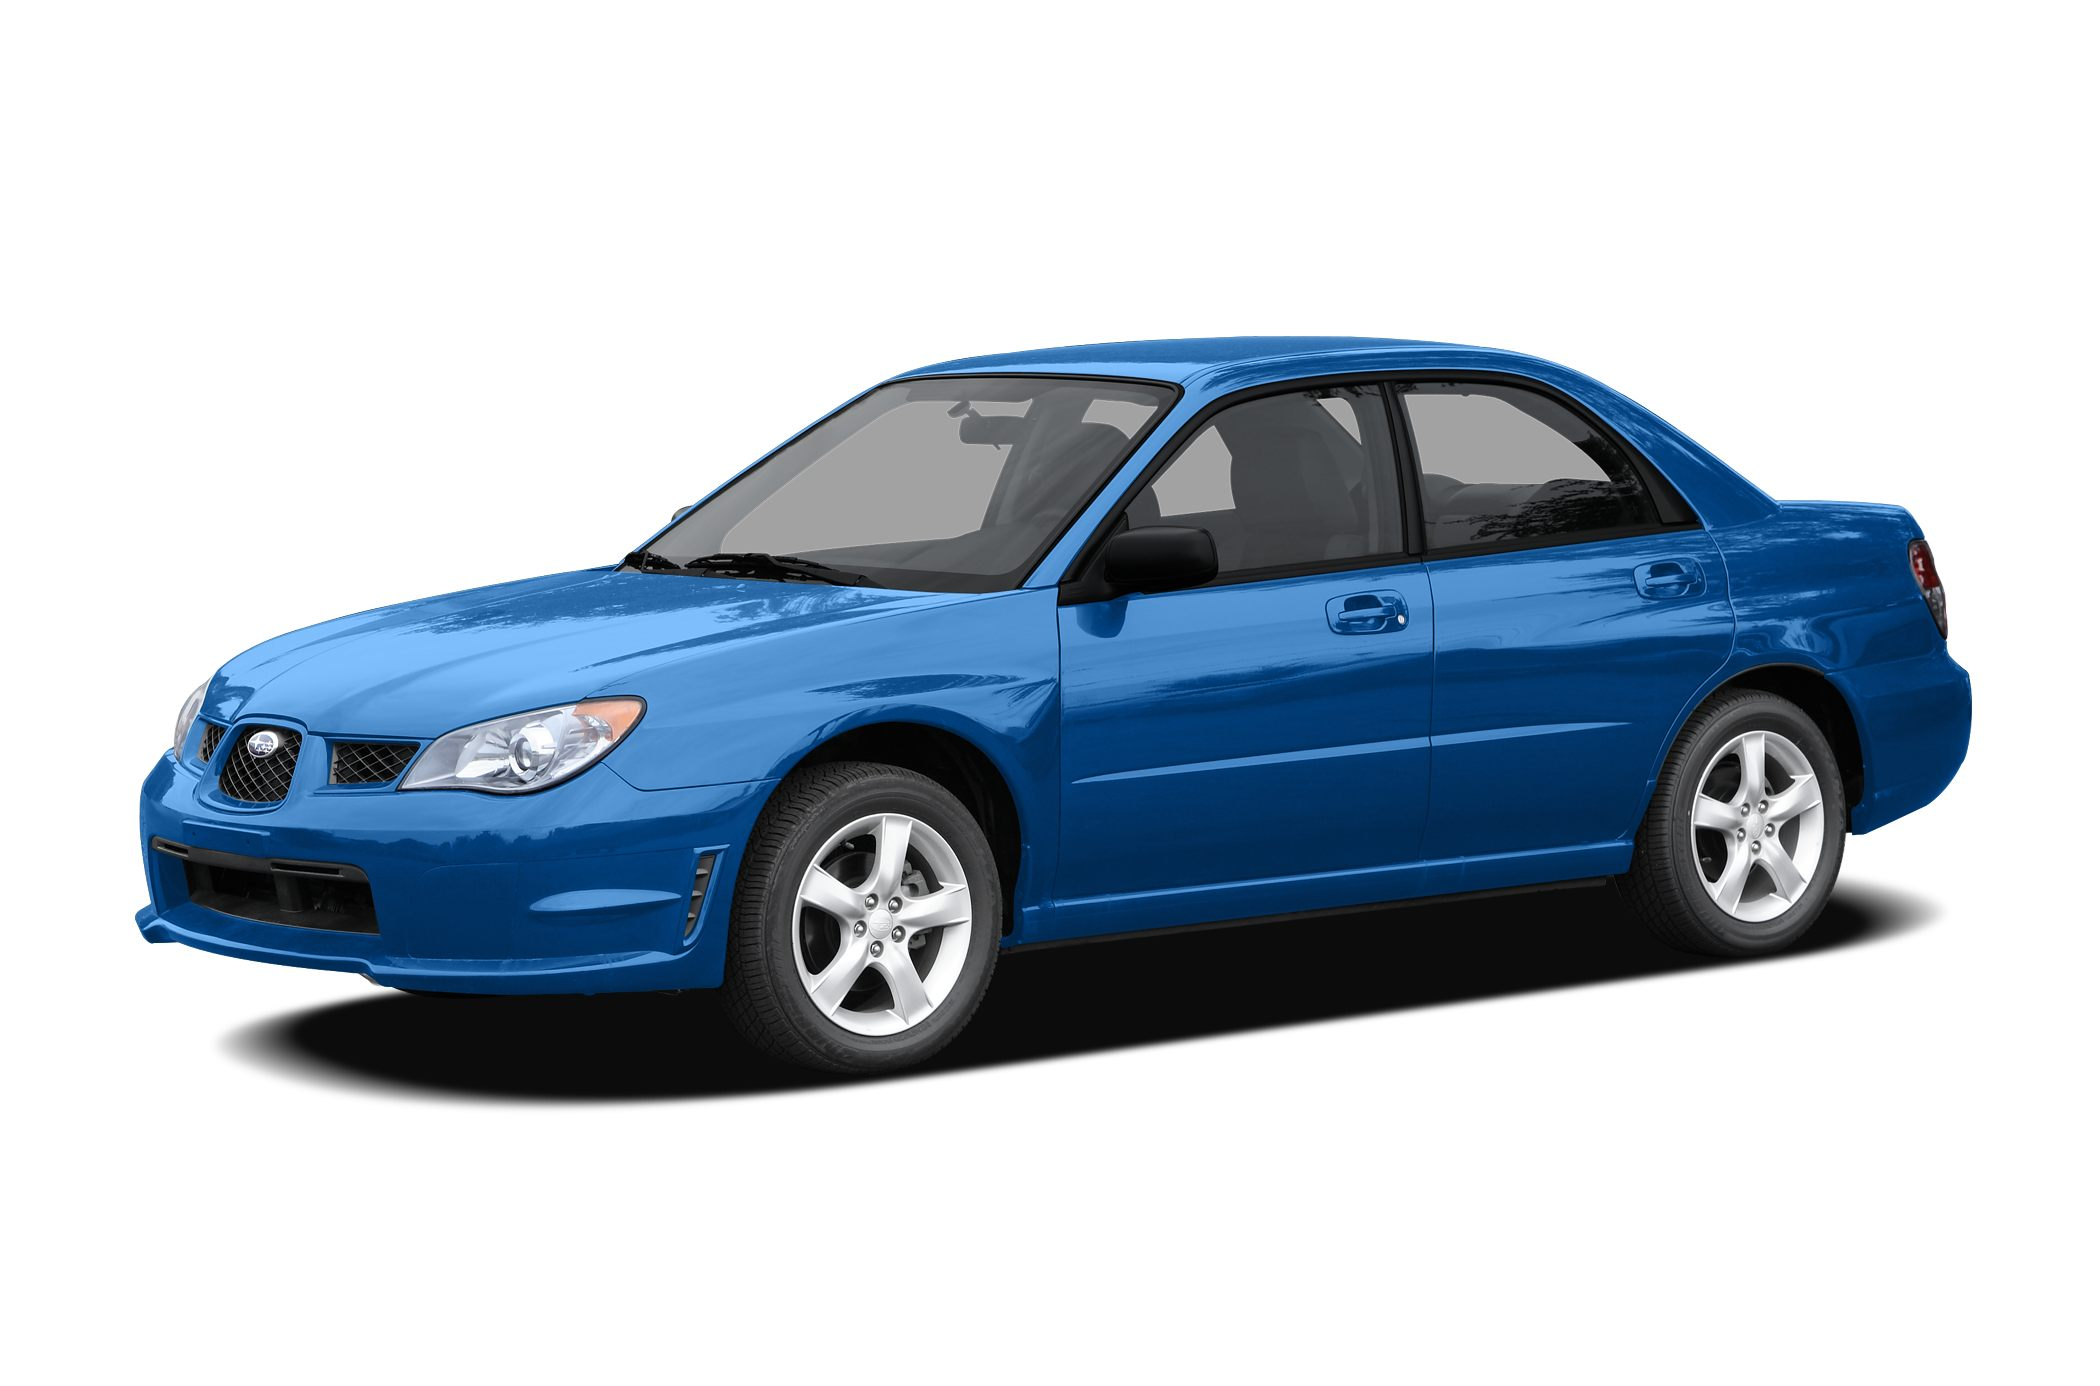 2007 Subaru Impreza 2.5i Wagon for sale in Weaverville for $9,499 with 109,952 miles.